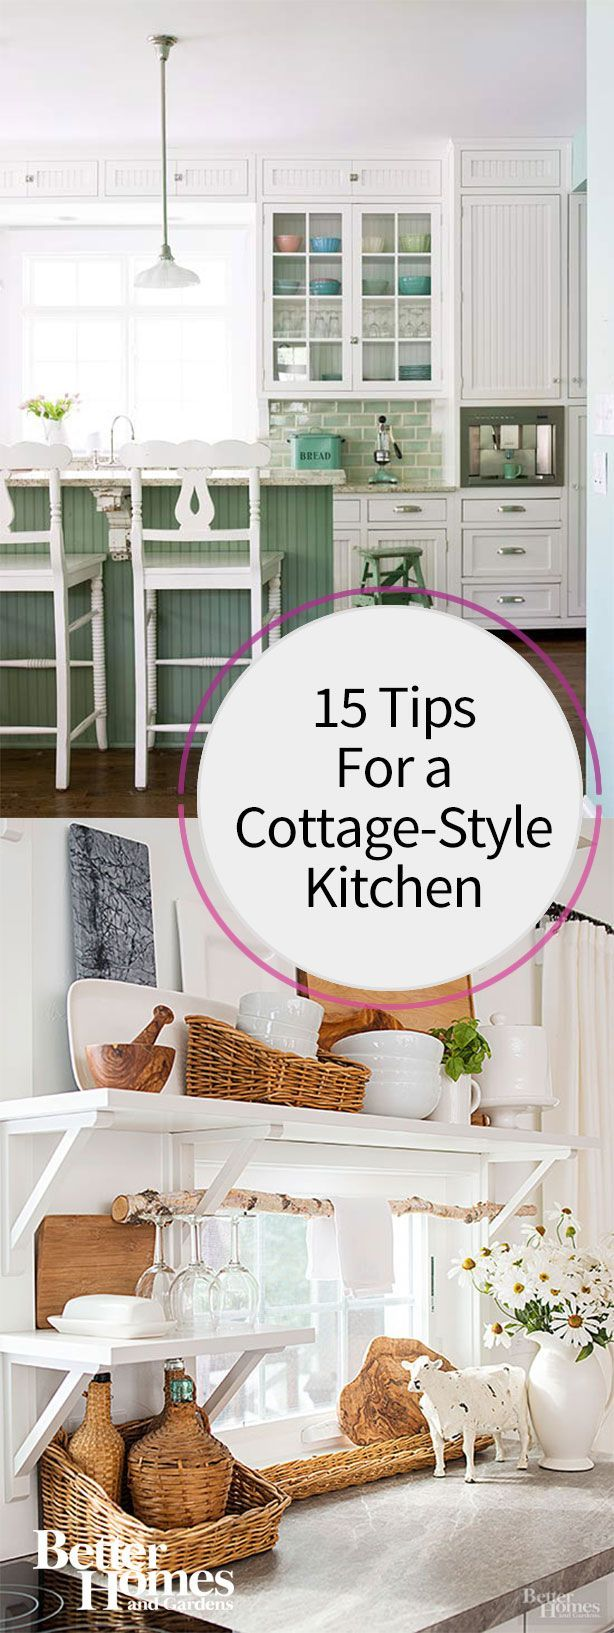 Add a little cottage-style to your kitchen with these easy and simple tips. See how you can create a warm and charming cottage feel to your kitchen space with these tips and ideas.